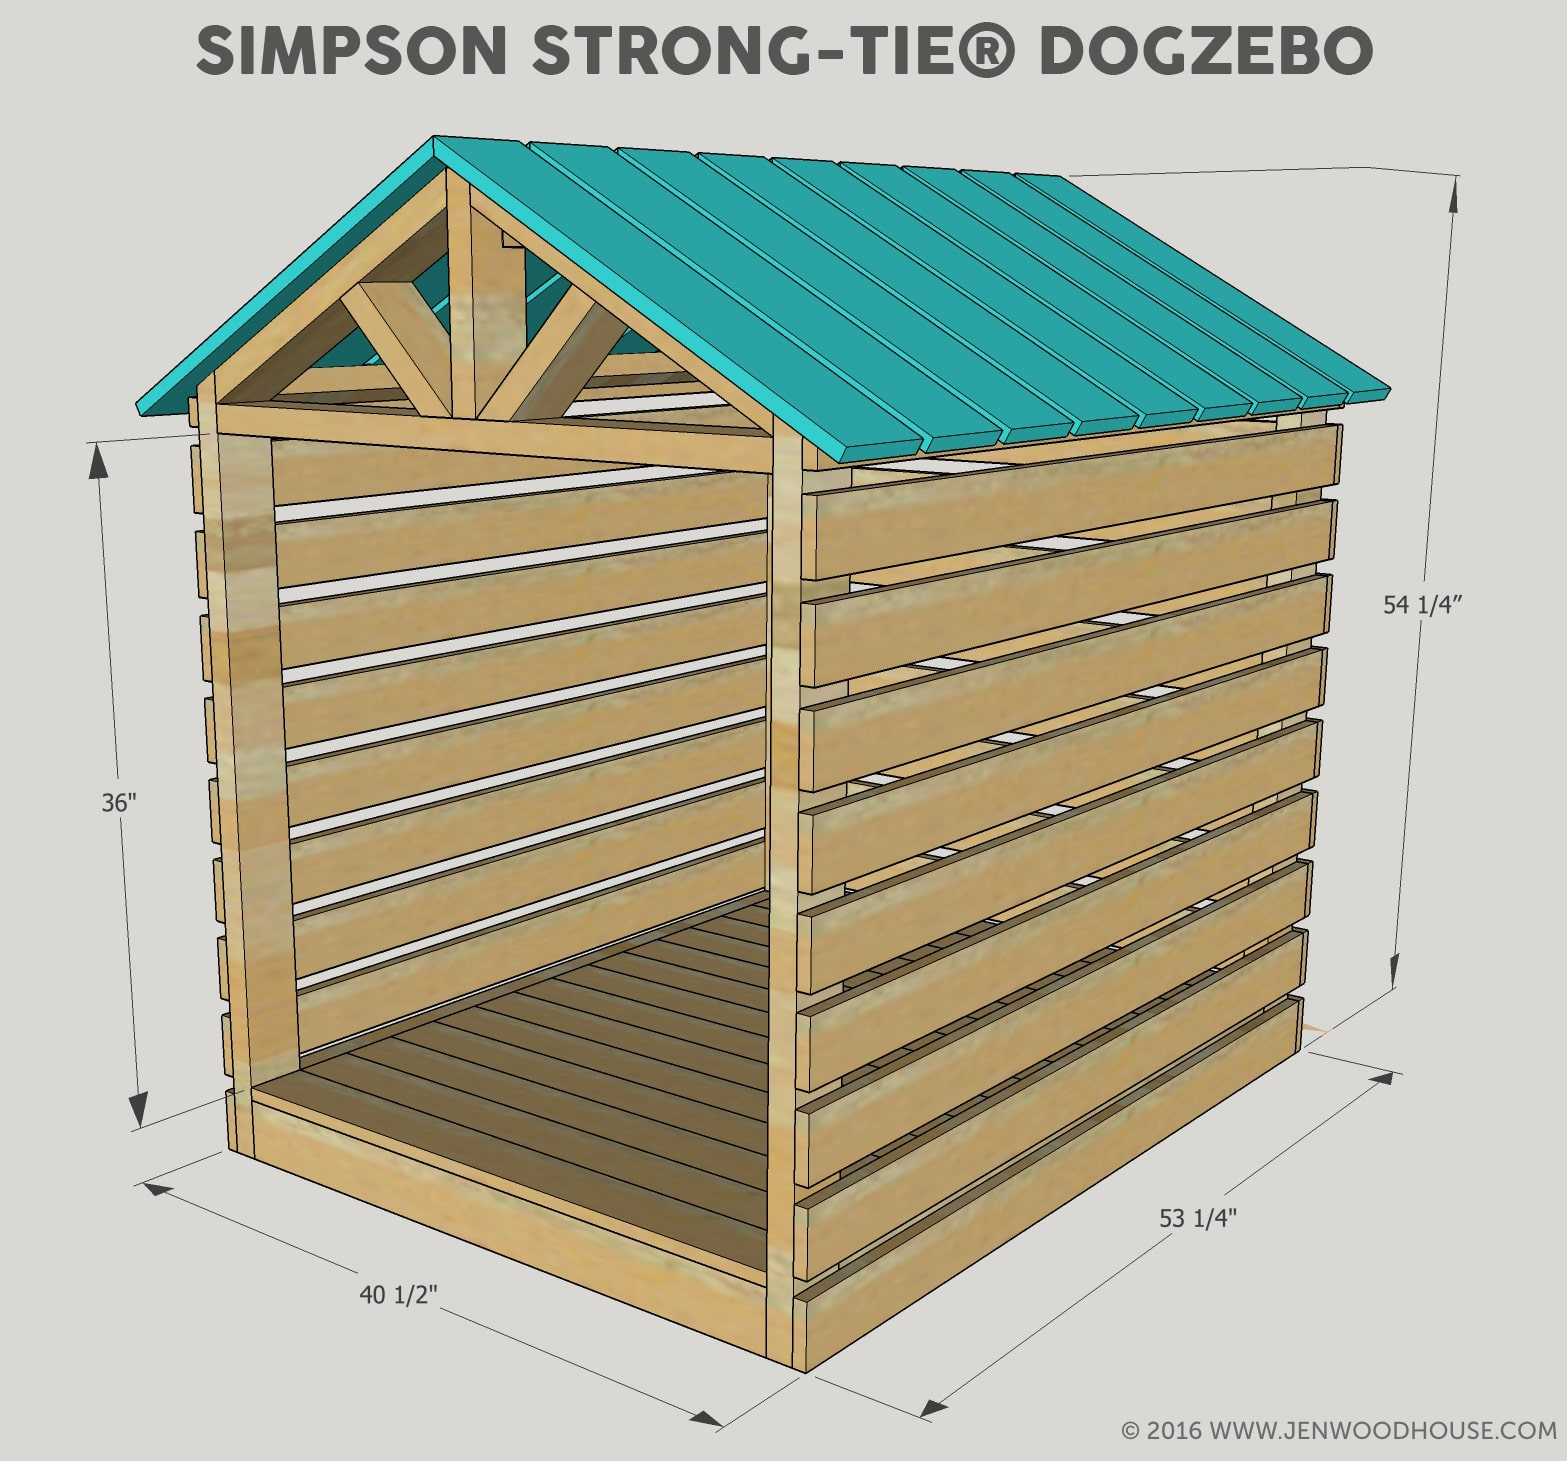 How to build a DIY Dog House Gazebo - free building plans!